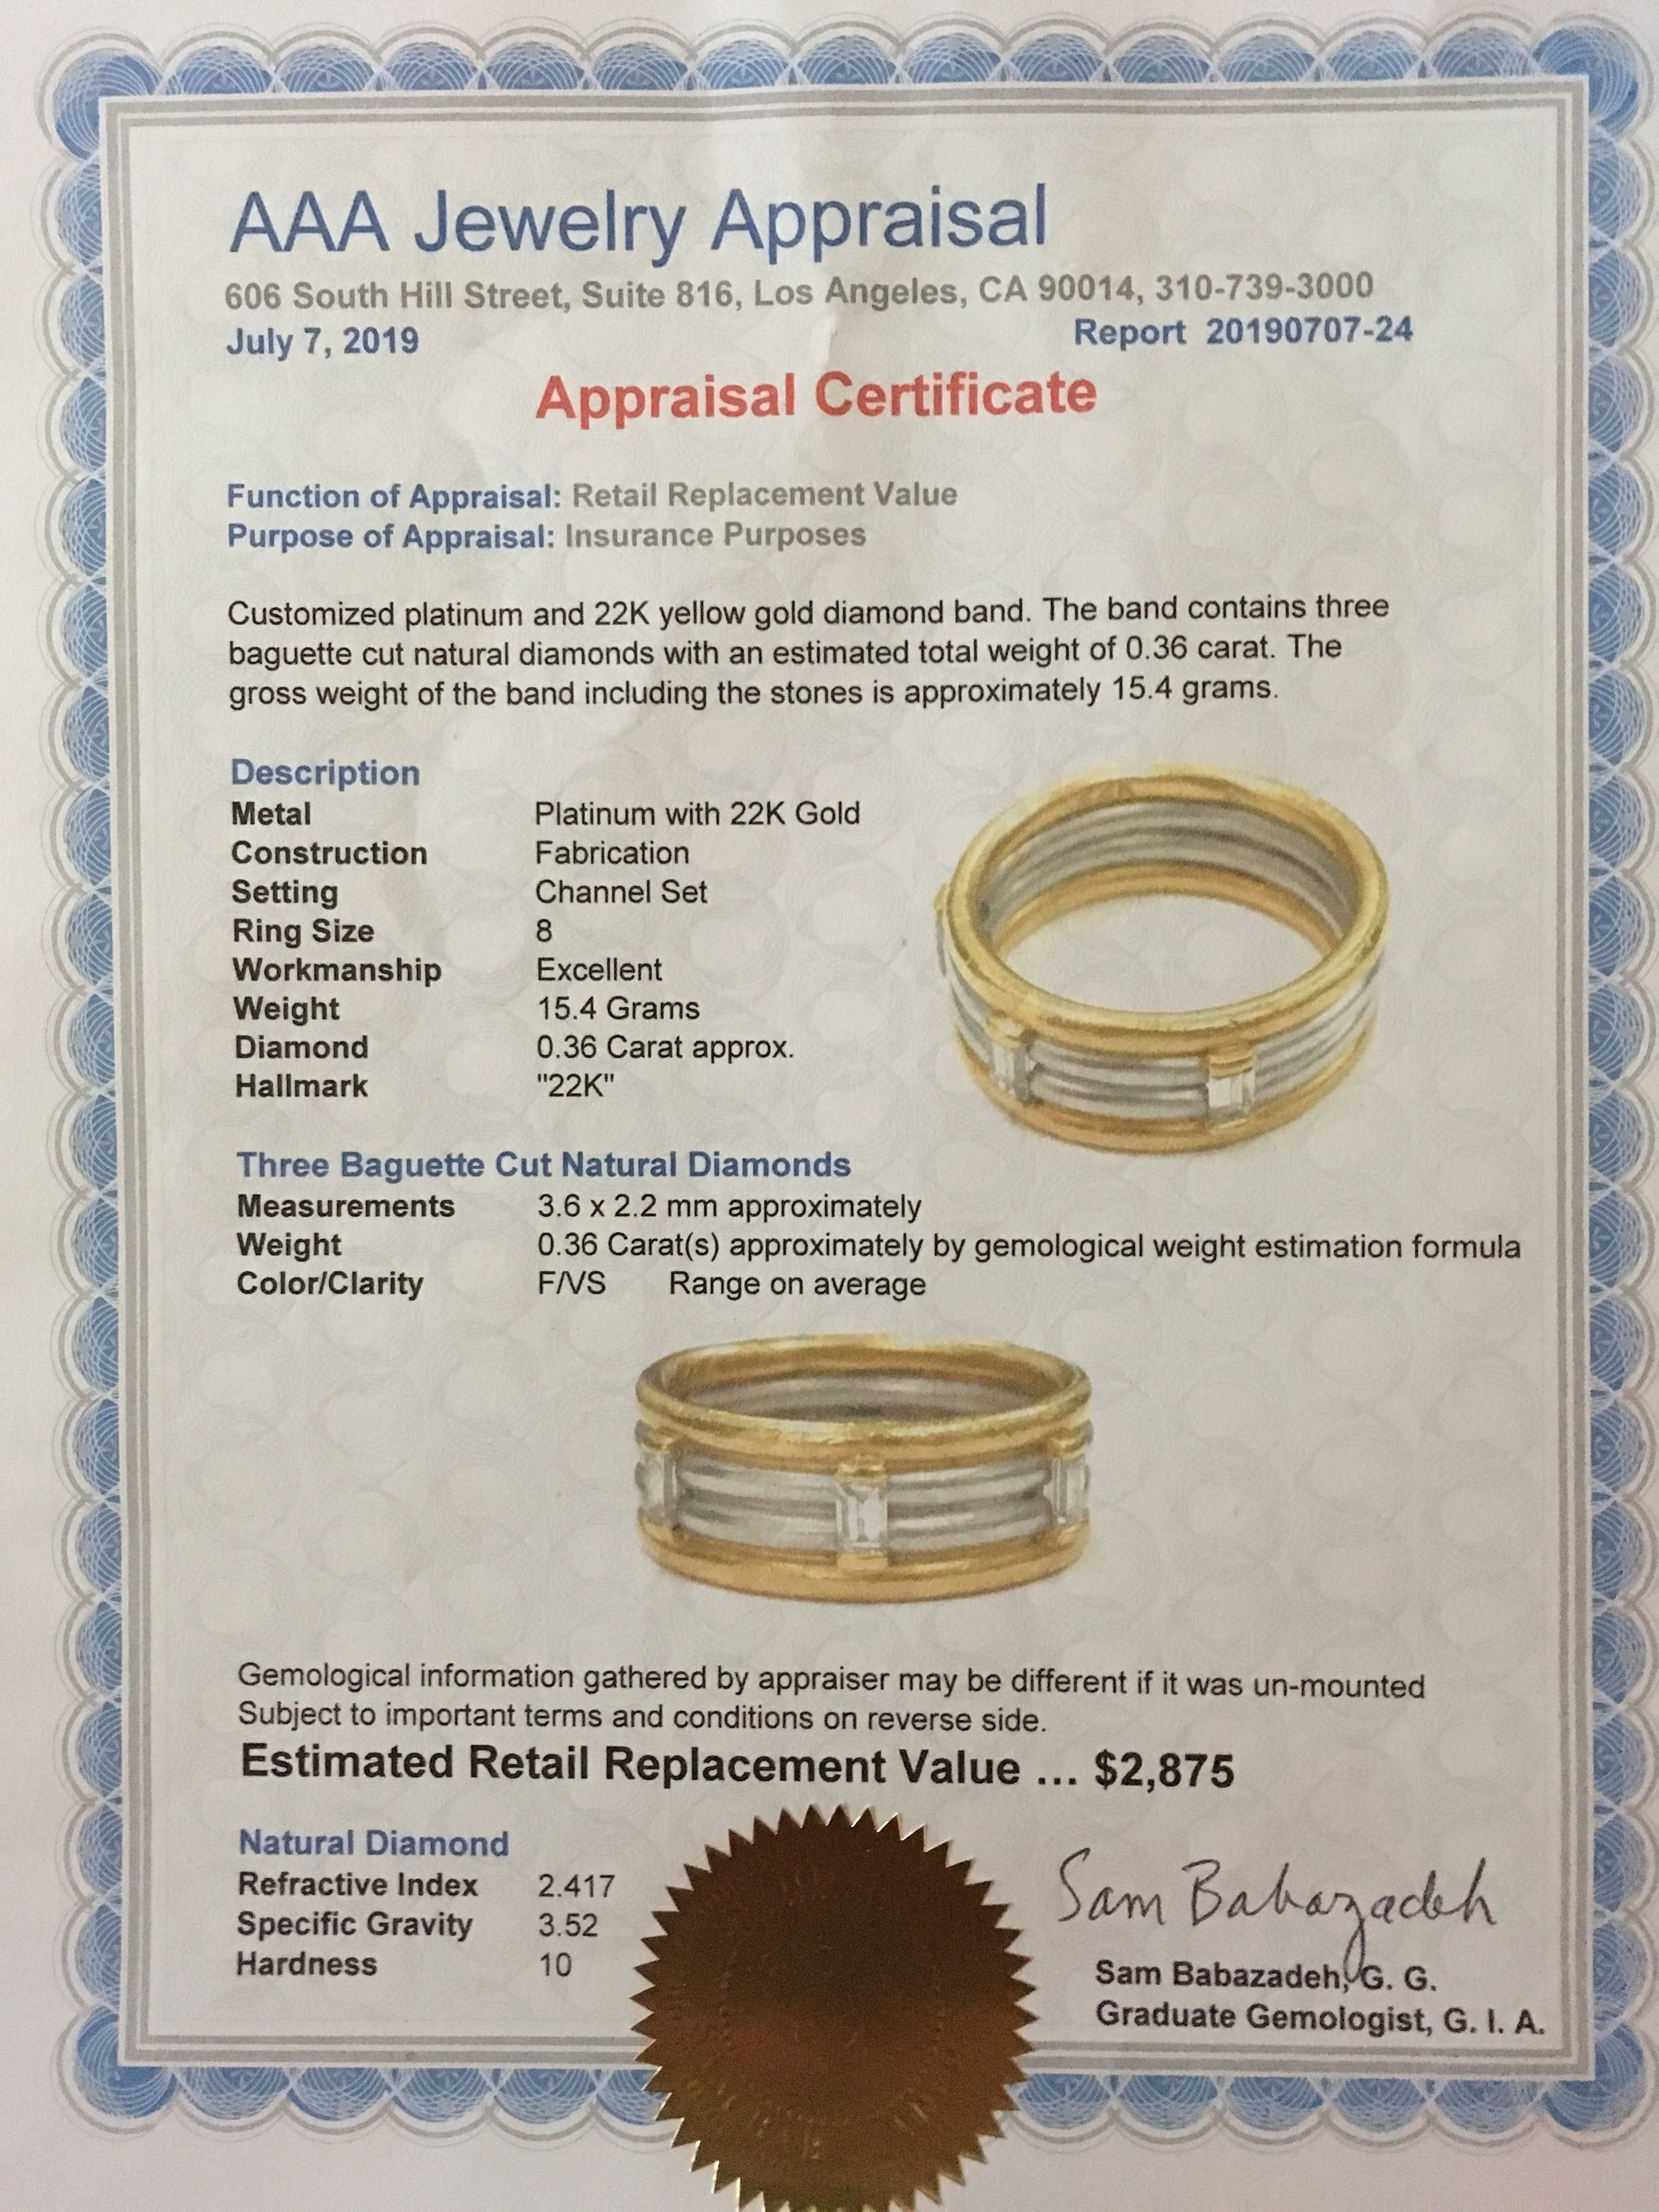 Unique Men's wedding band set on 22K Gold and Platinum with three Diamond  Bagguettes